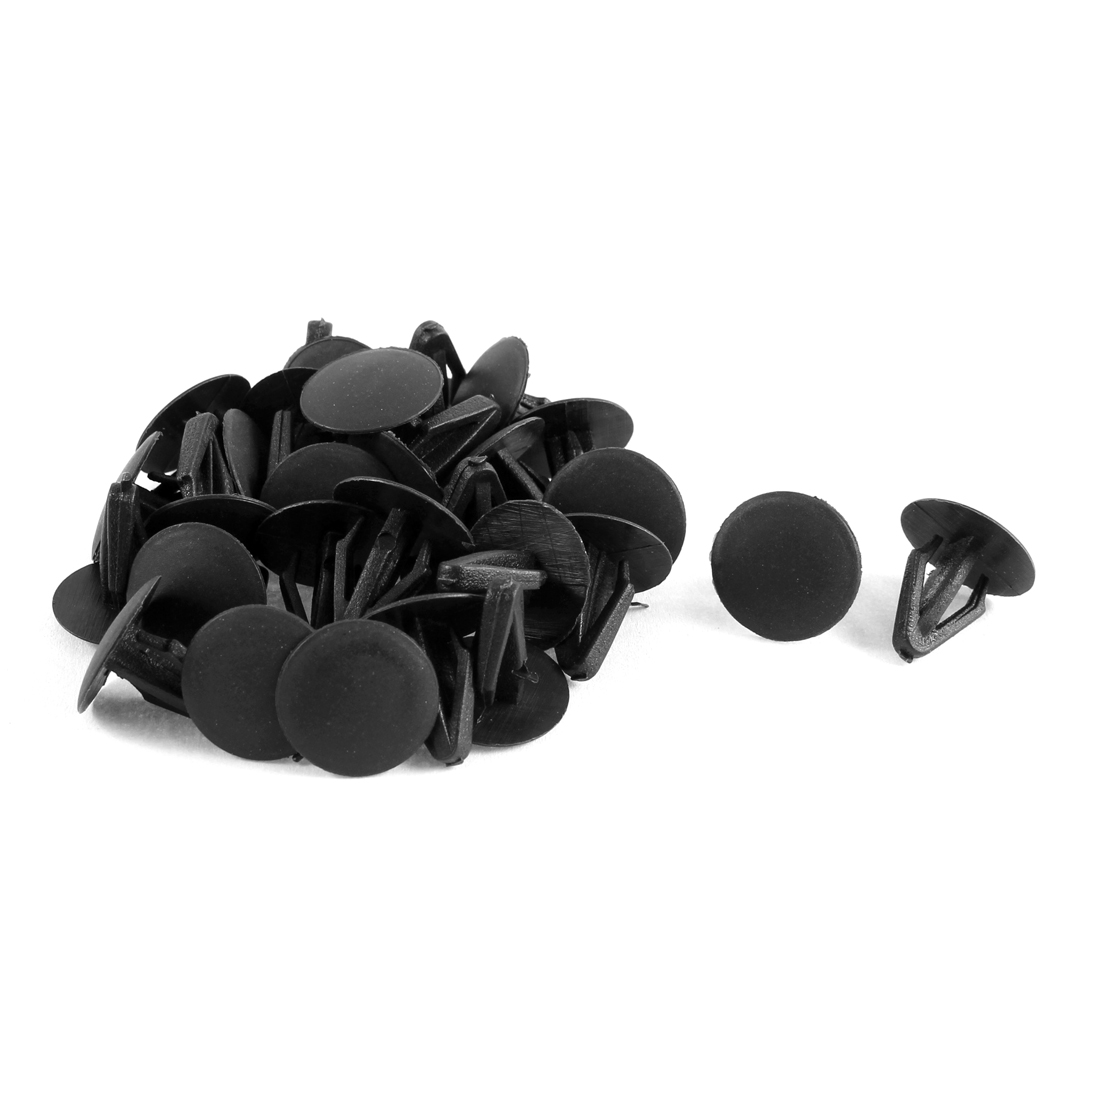 30 Pcs Black Plastic Rivets Fastener 9mm Fit Hole for Car Bumper Fender